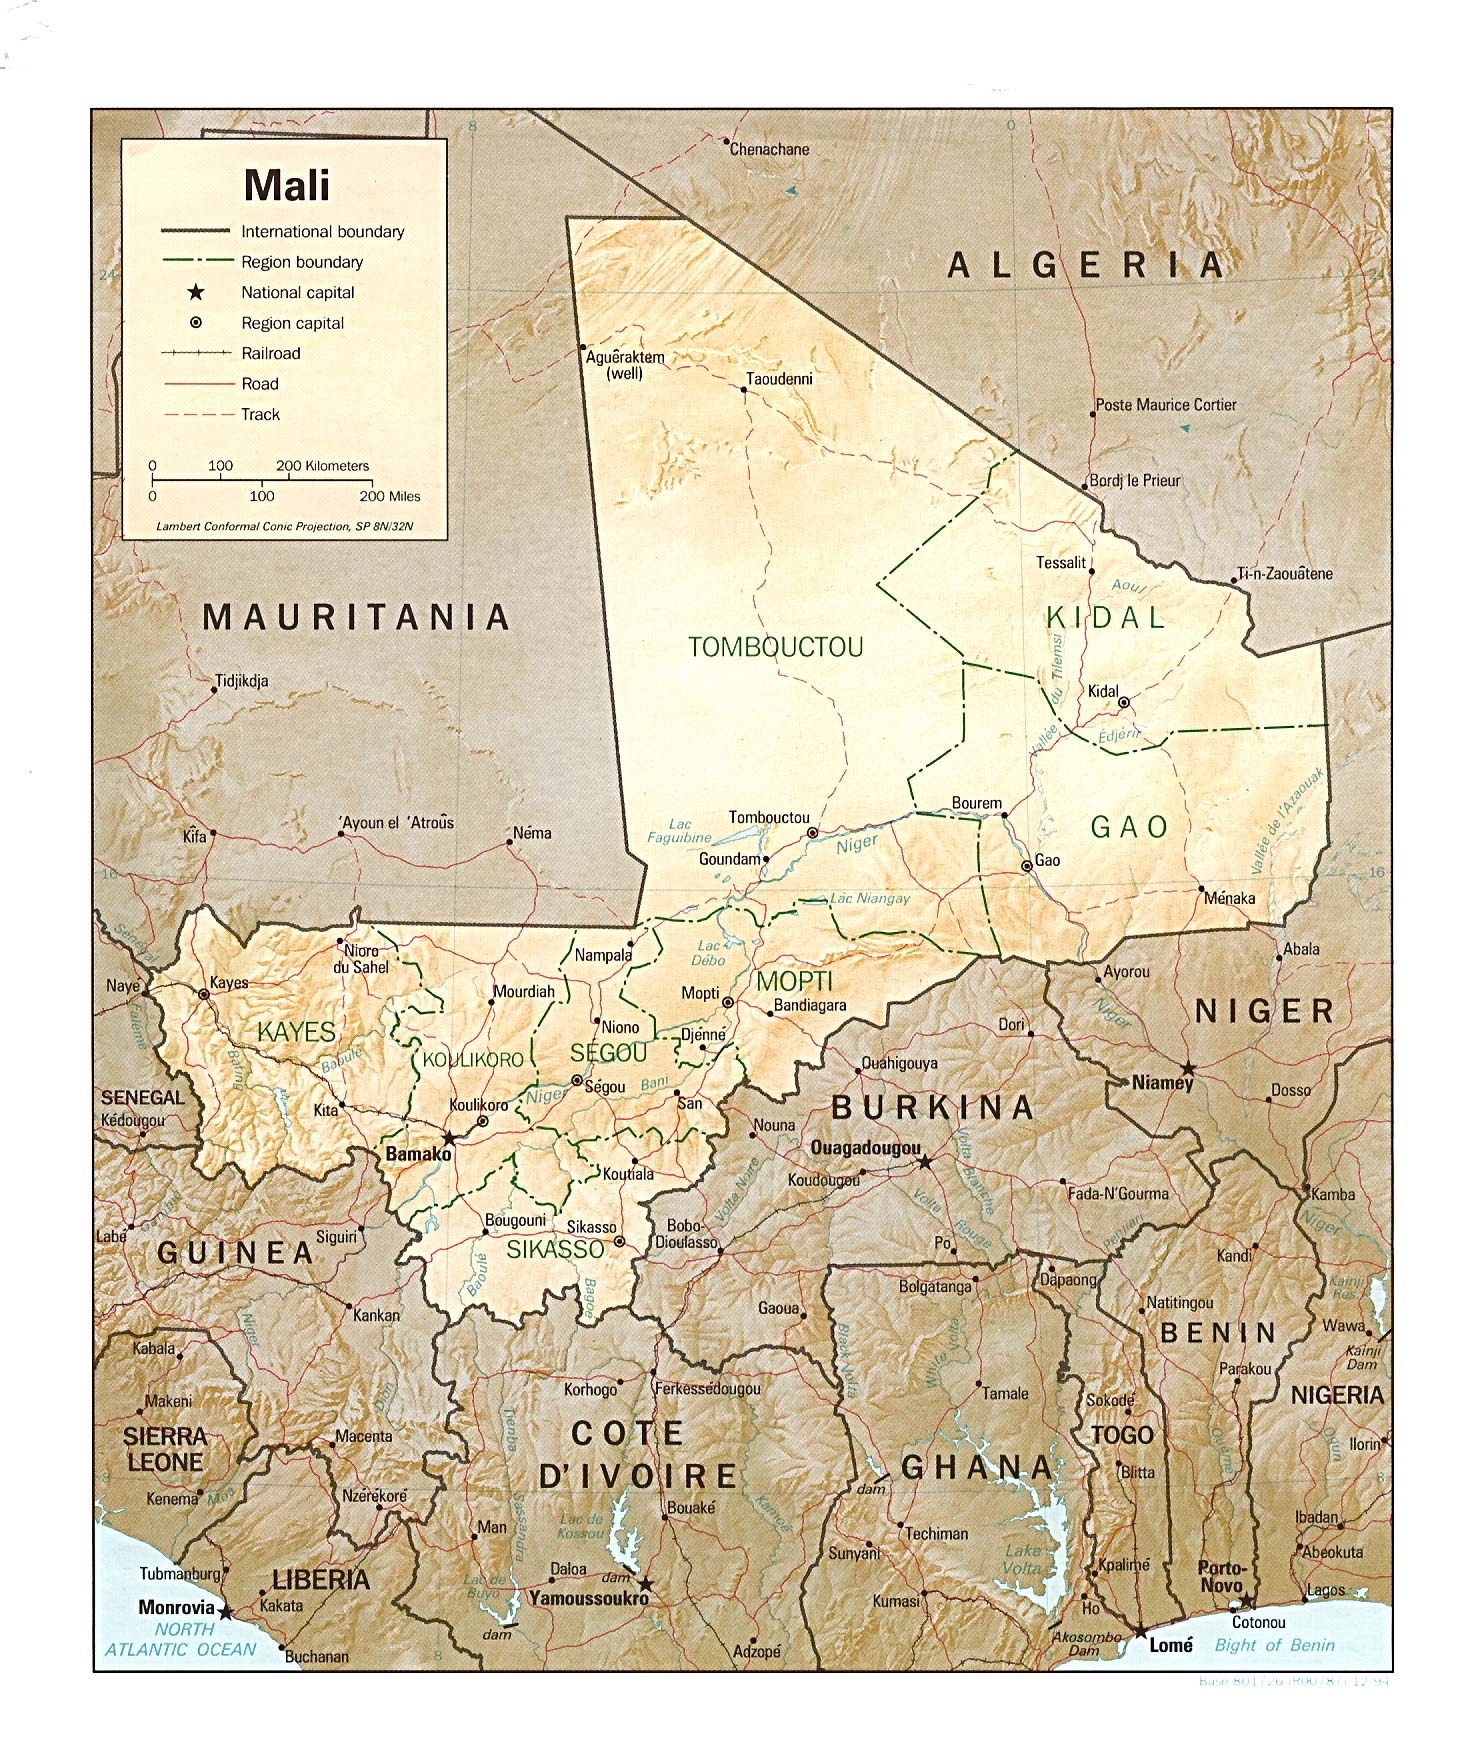 http://upload.wikimedia.org/wikipedia/commons/6/66/Mali_Map.jpg